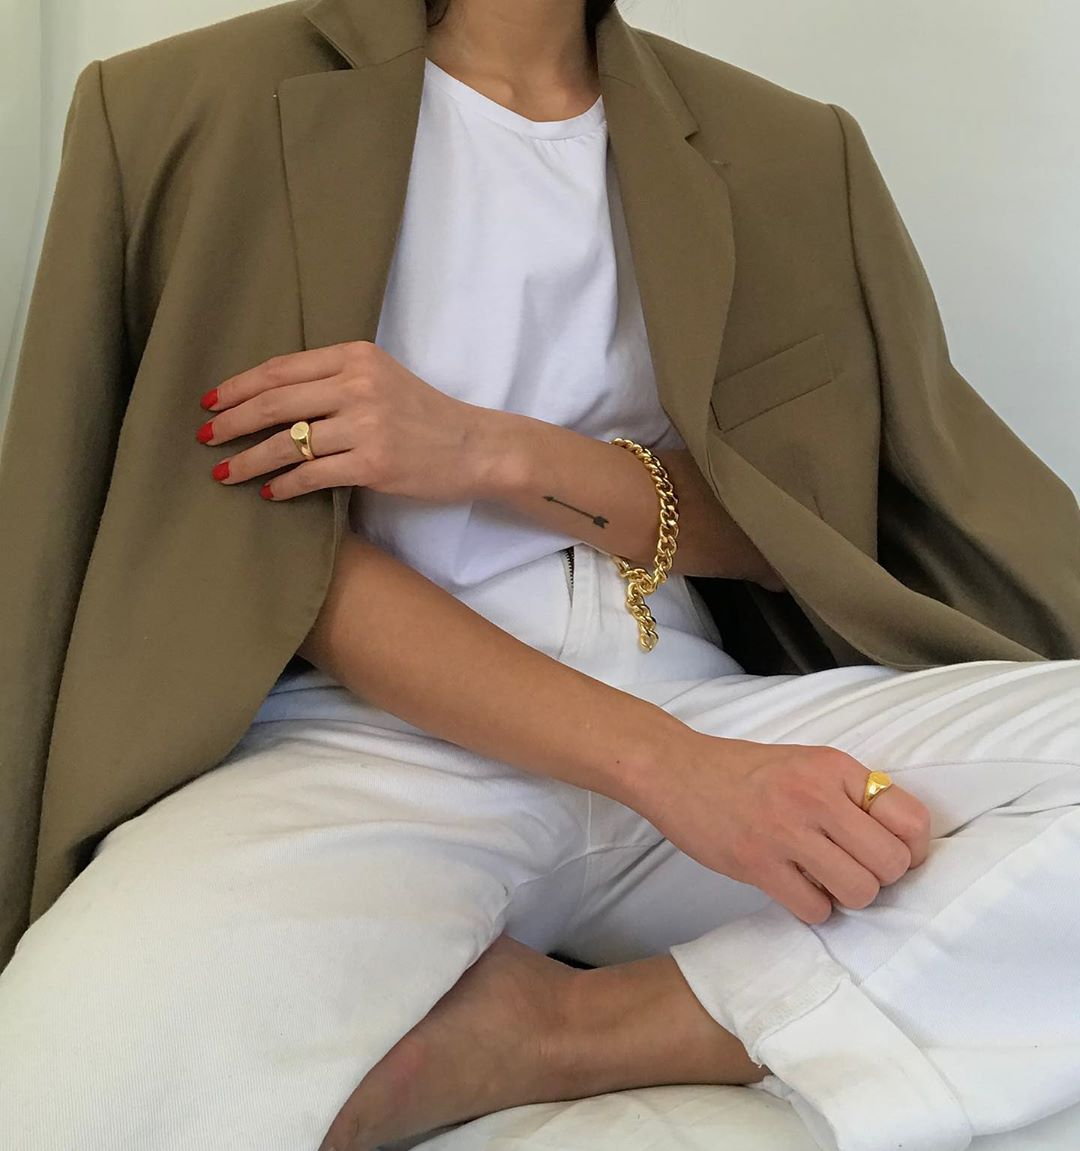 Fall Outfit Idea with neutral blazer, white t-shirt, signet rings, a chain bracelet, red nail polish, and off-white jeans